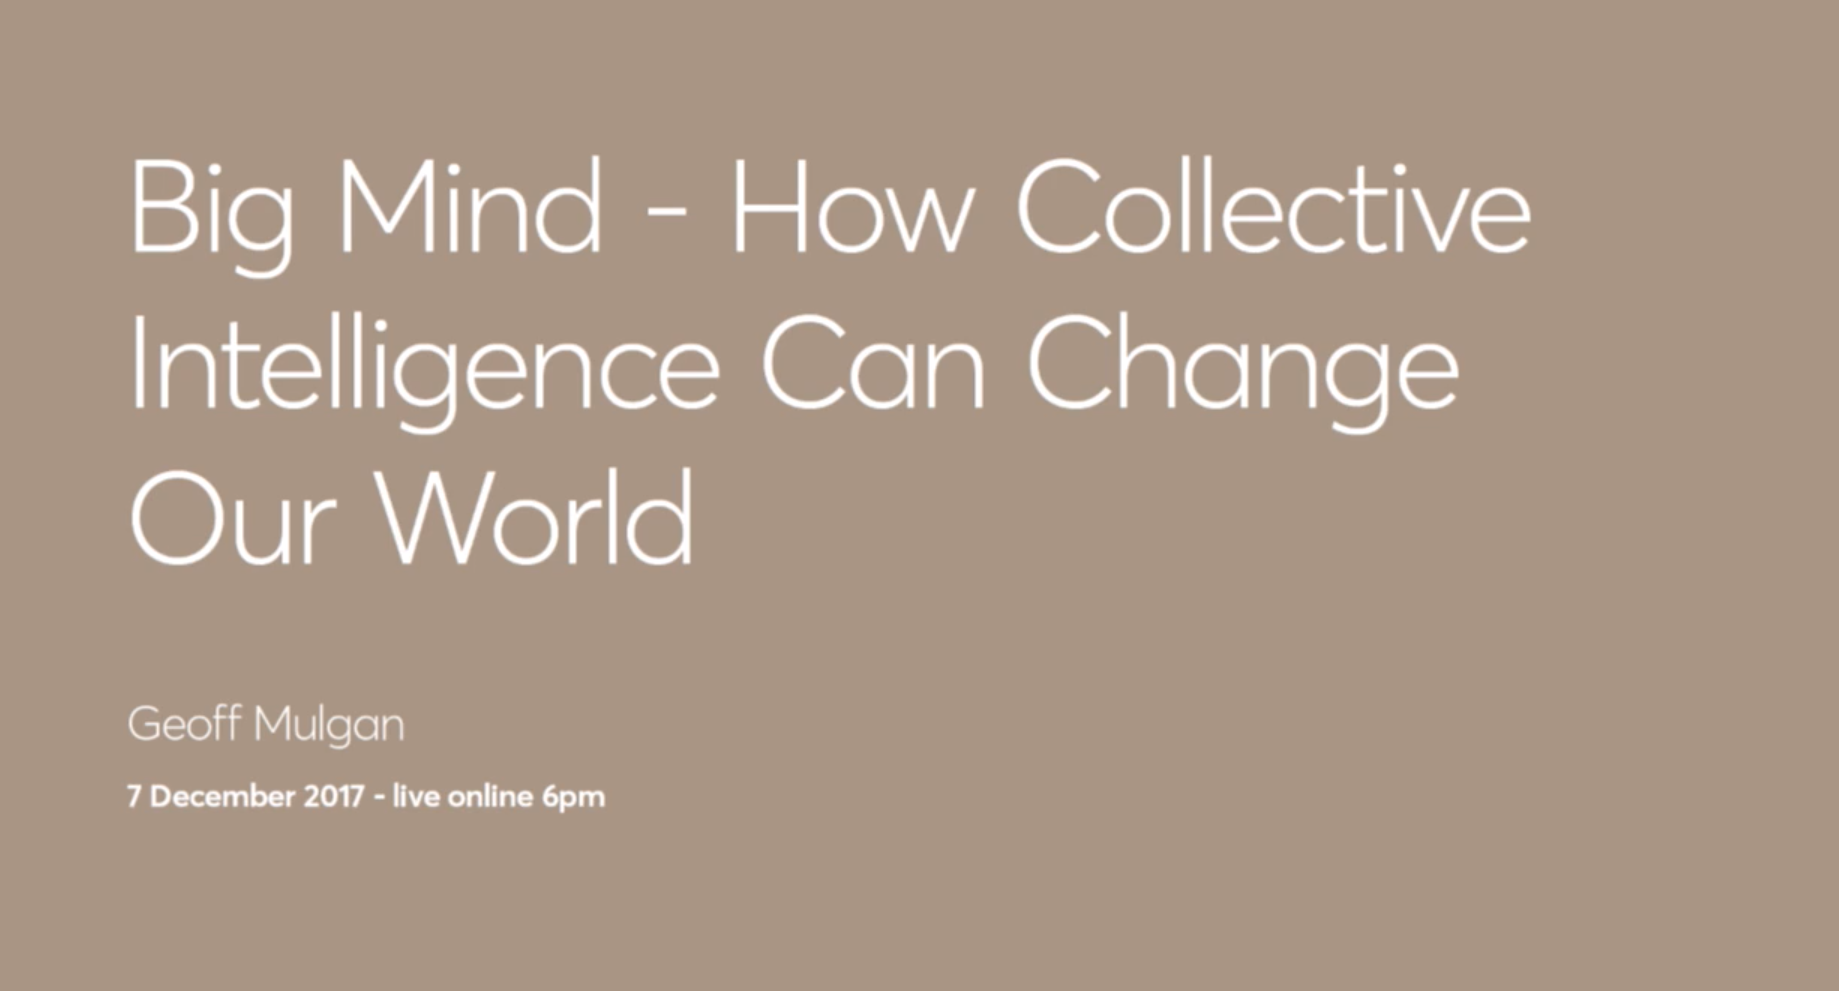 Thumbnail of video titled Big Mind - How collective intellige can change our world